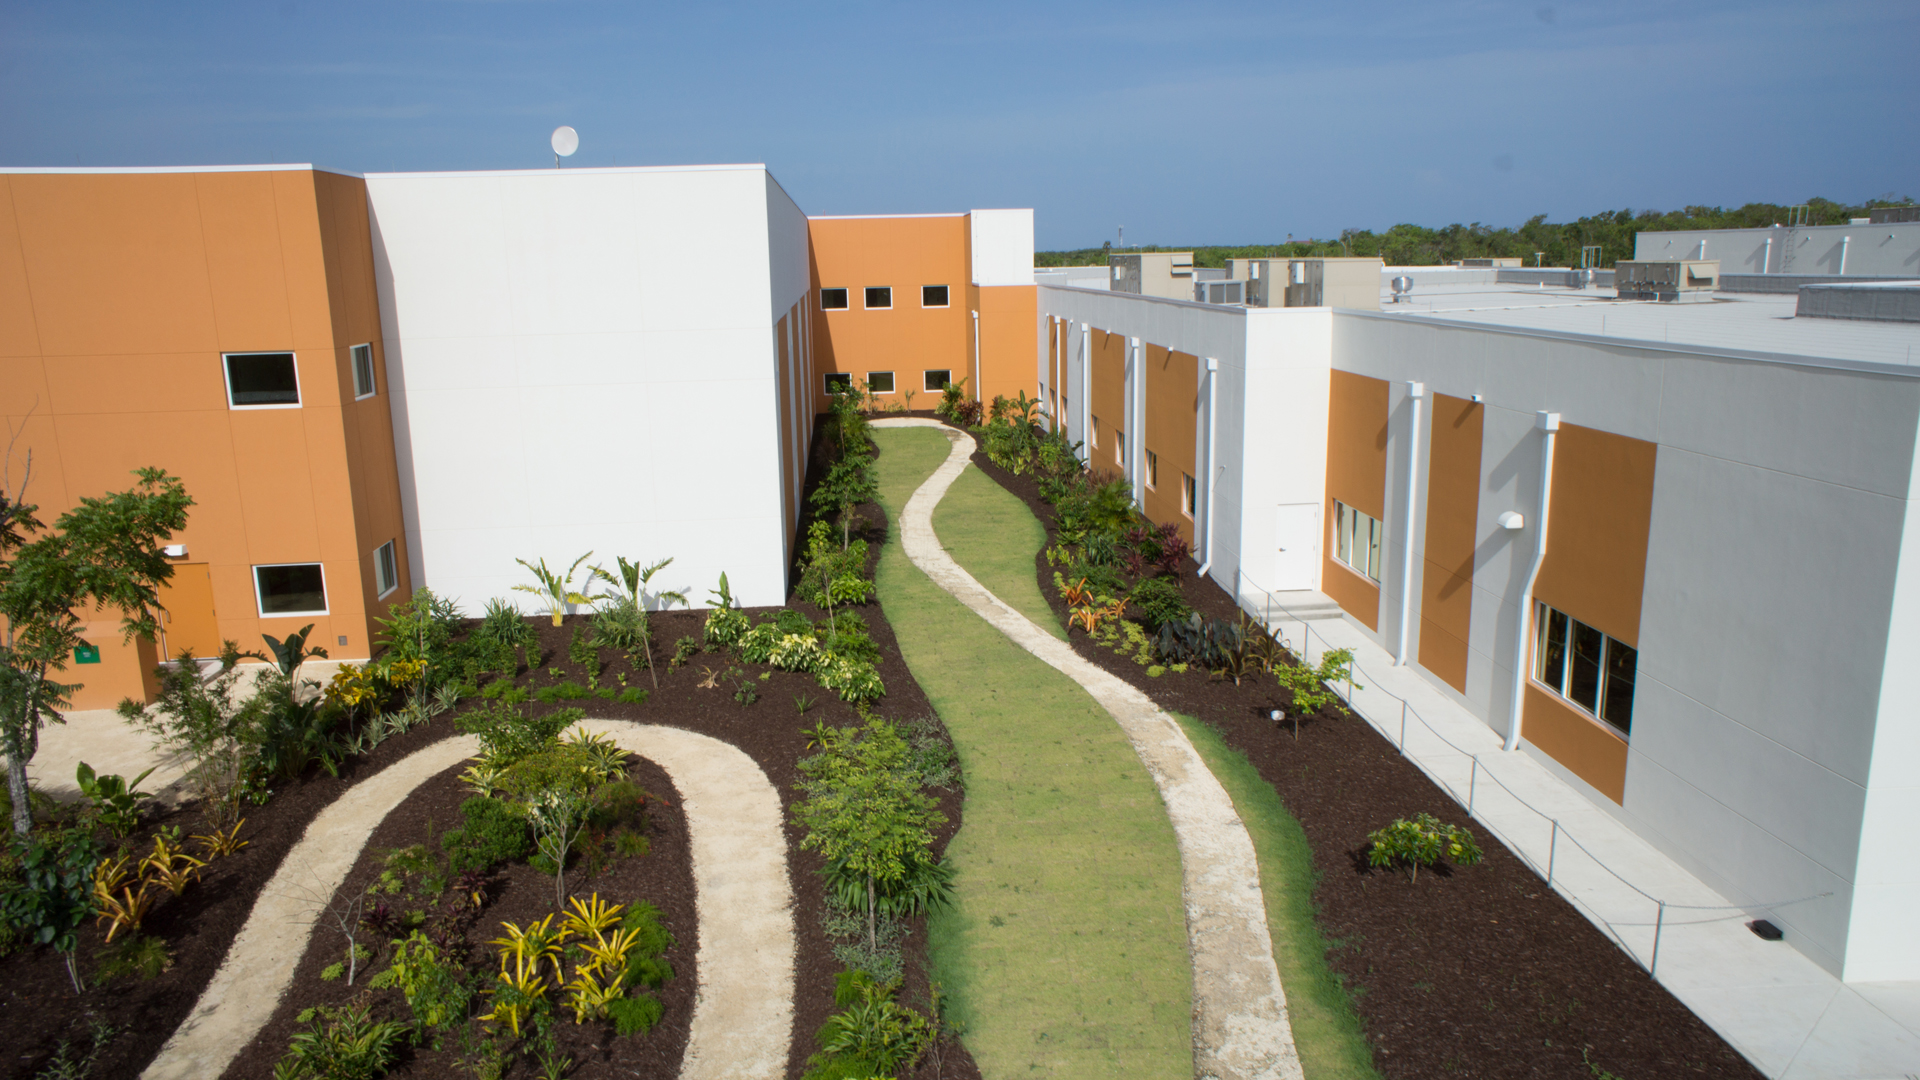 Aerial view of patient path at Health City